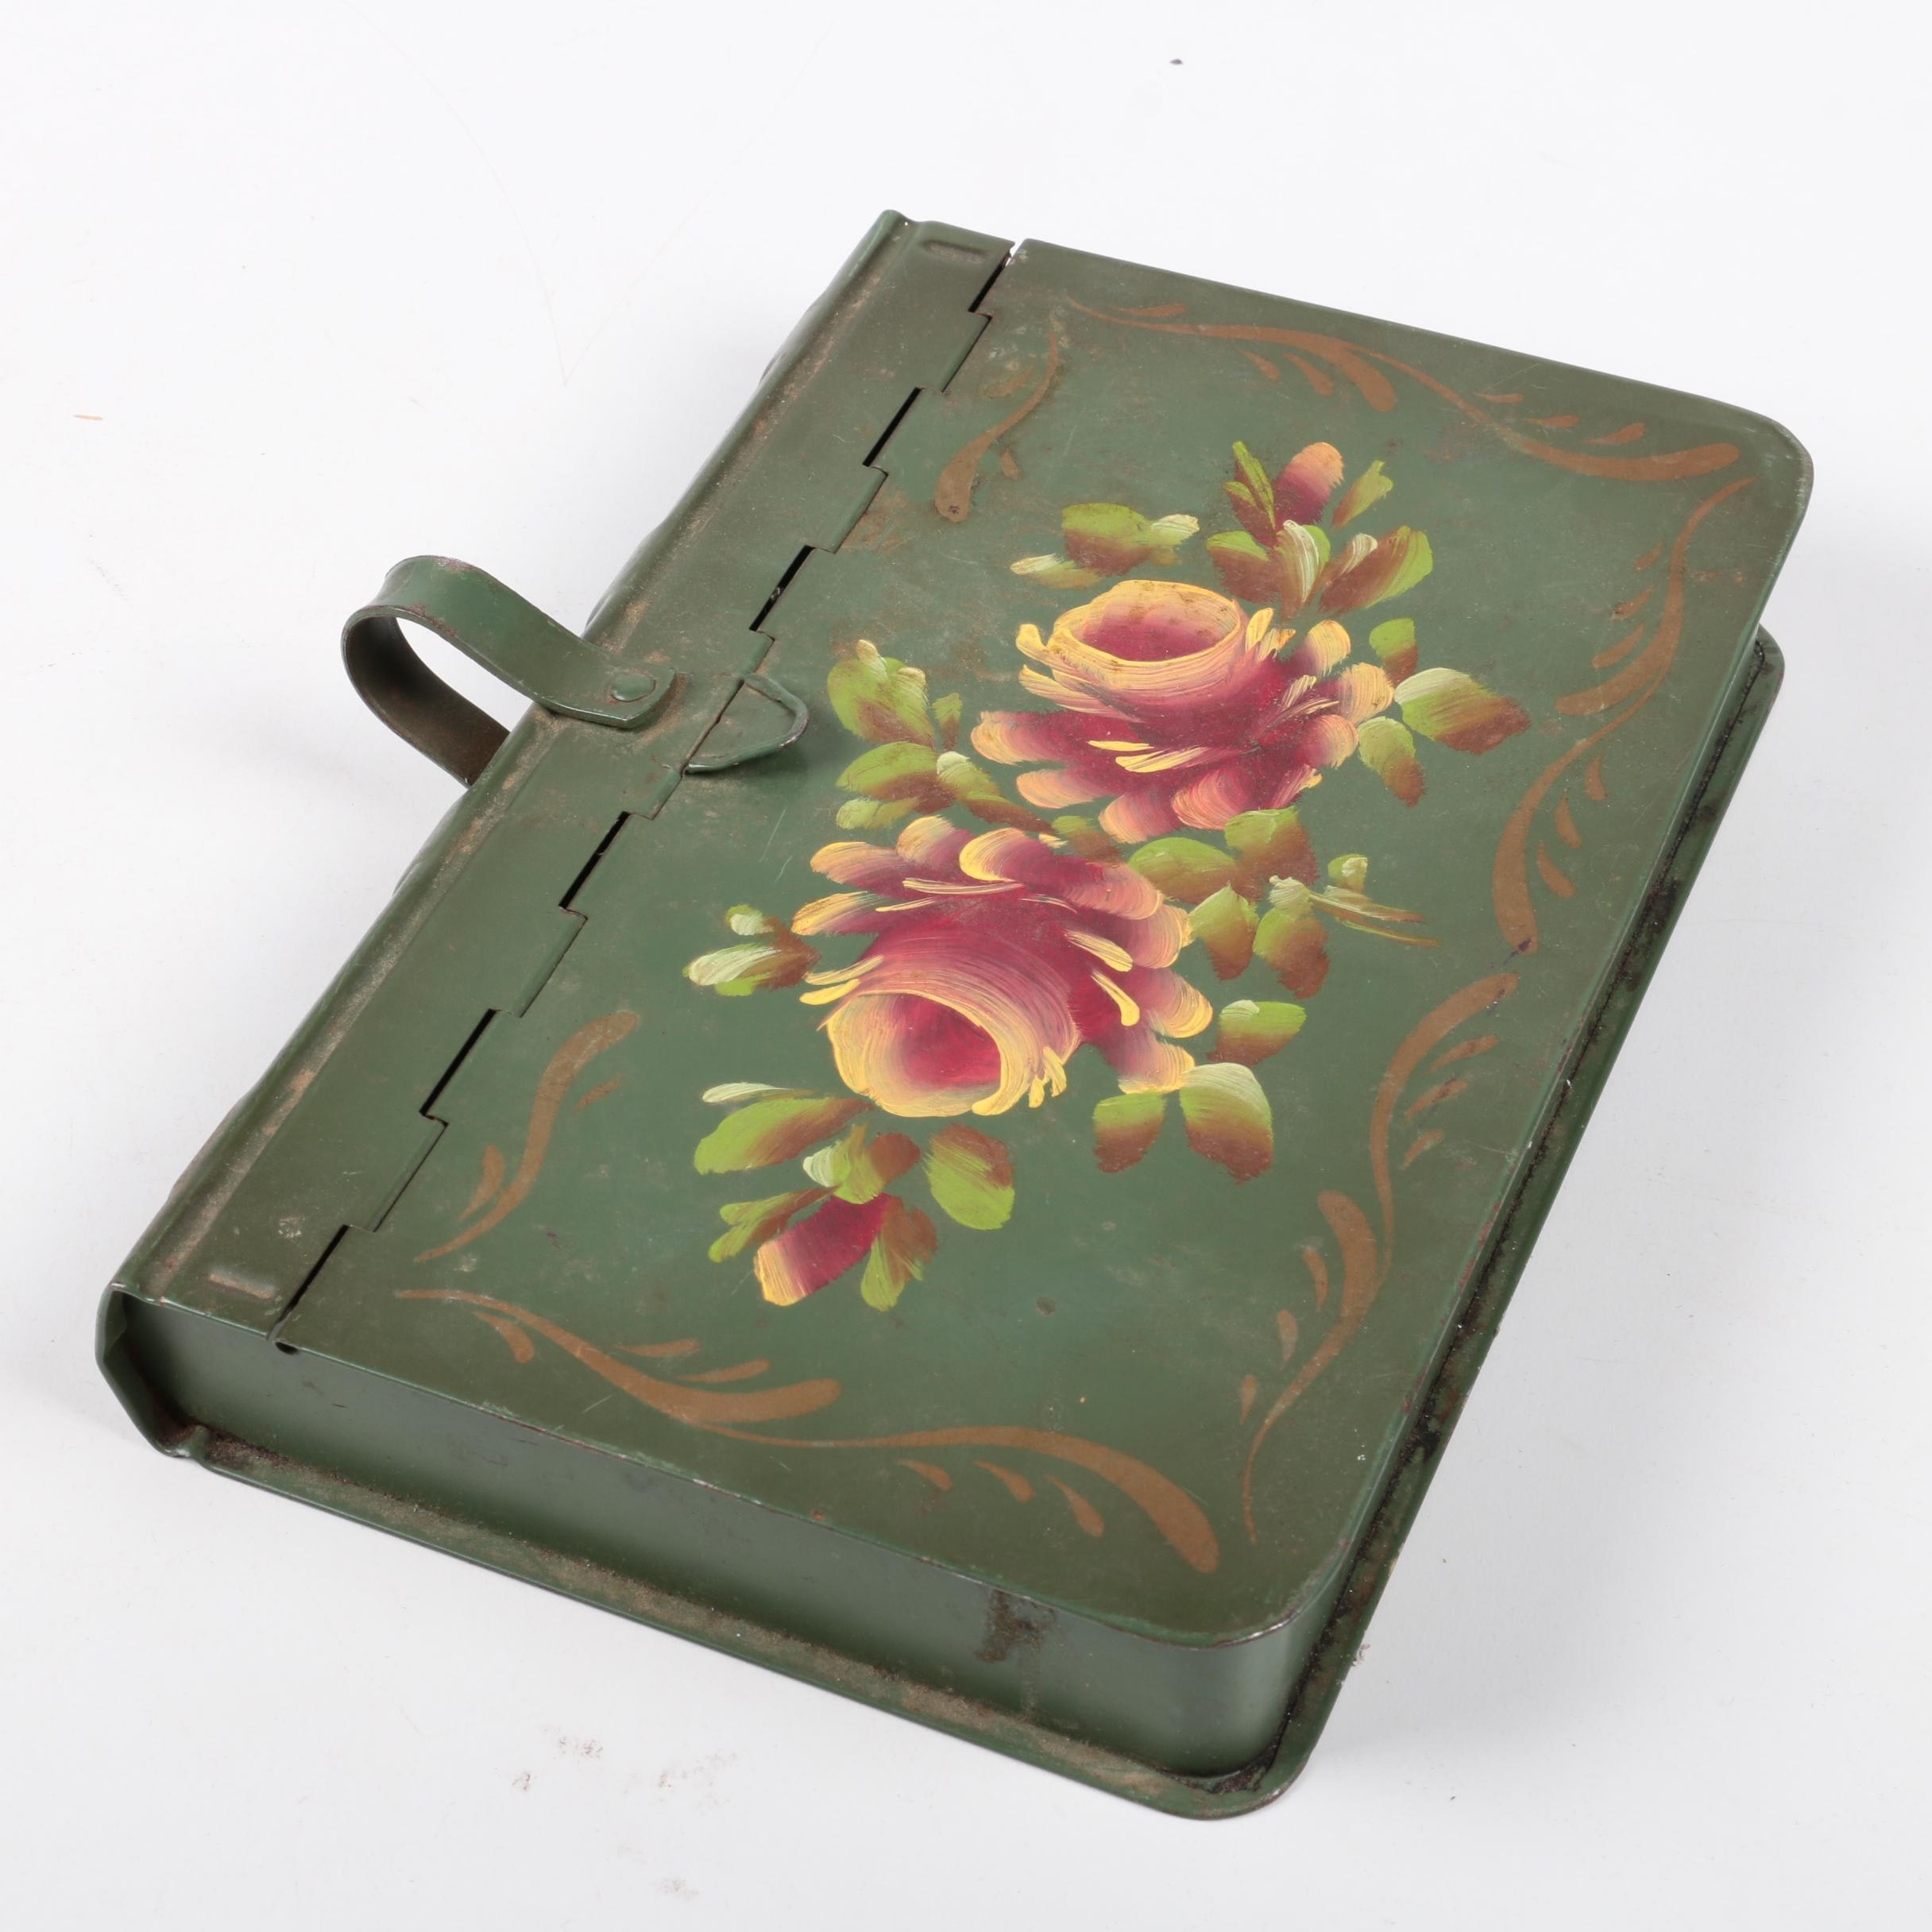 Green Metal Book Shaped Storage Box